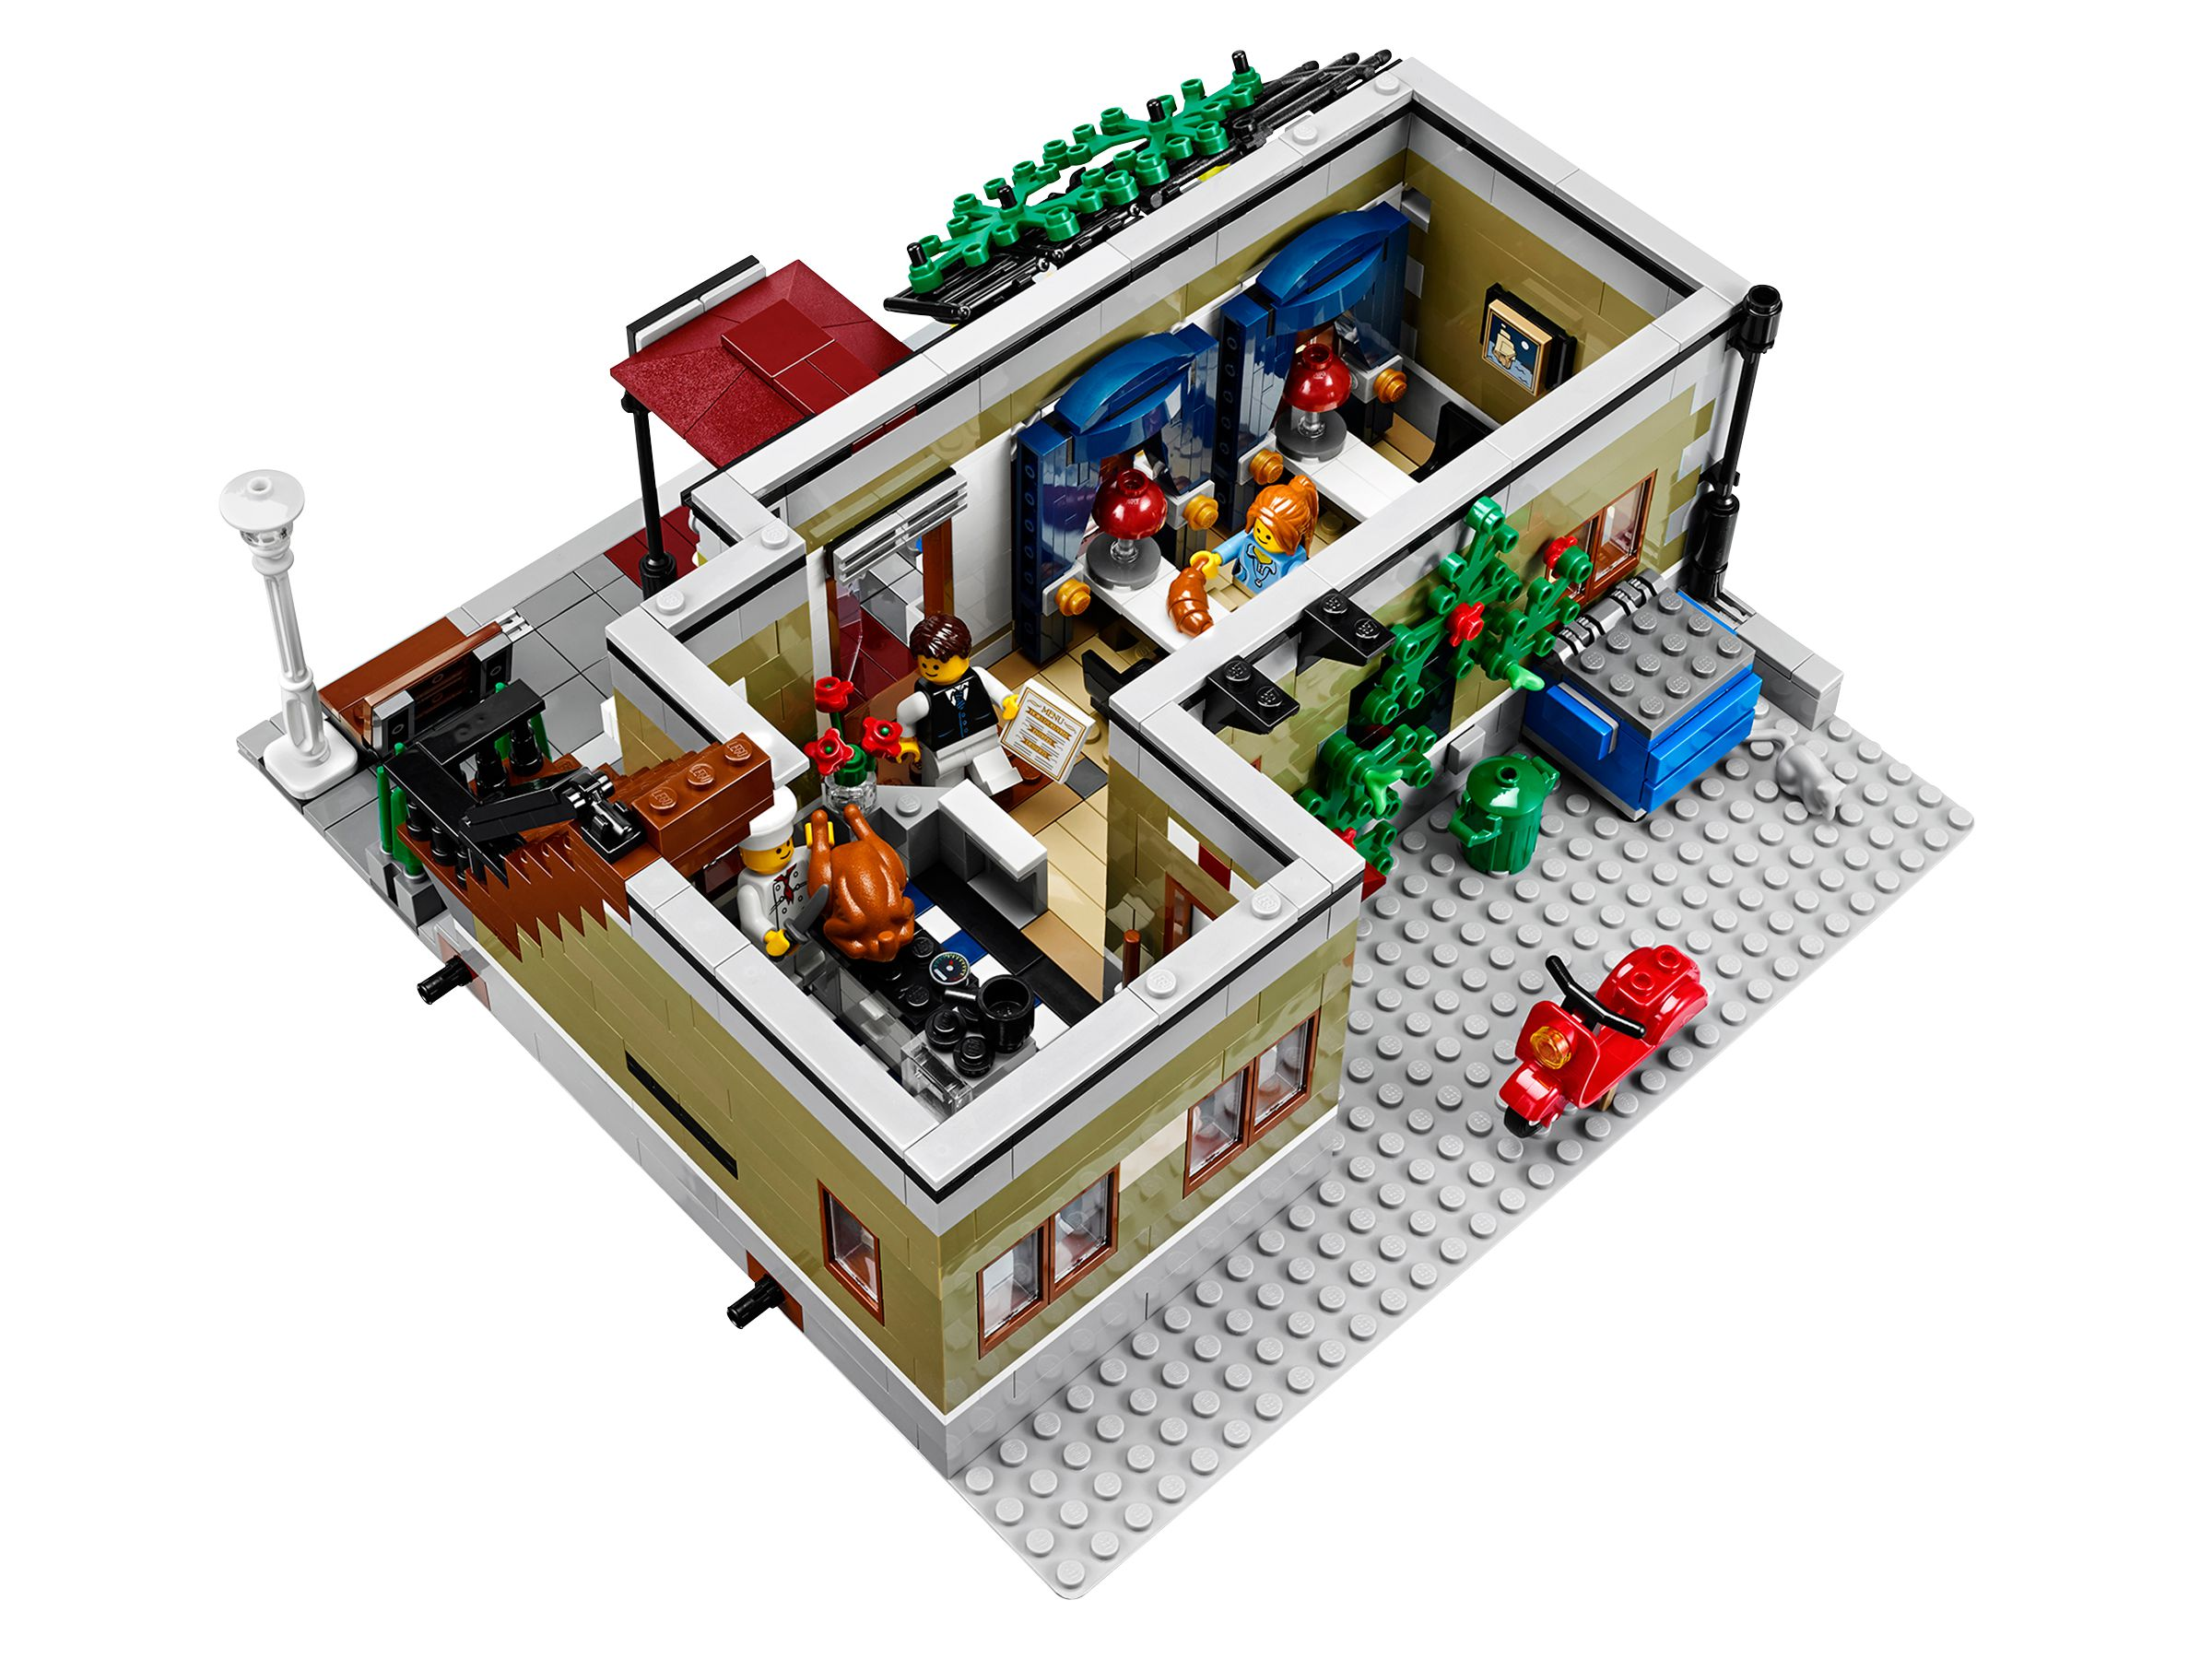 LEGO Advanced Models 10243 Pariser Restaurant LEGO_10243_alt2.jpg